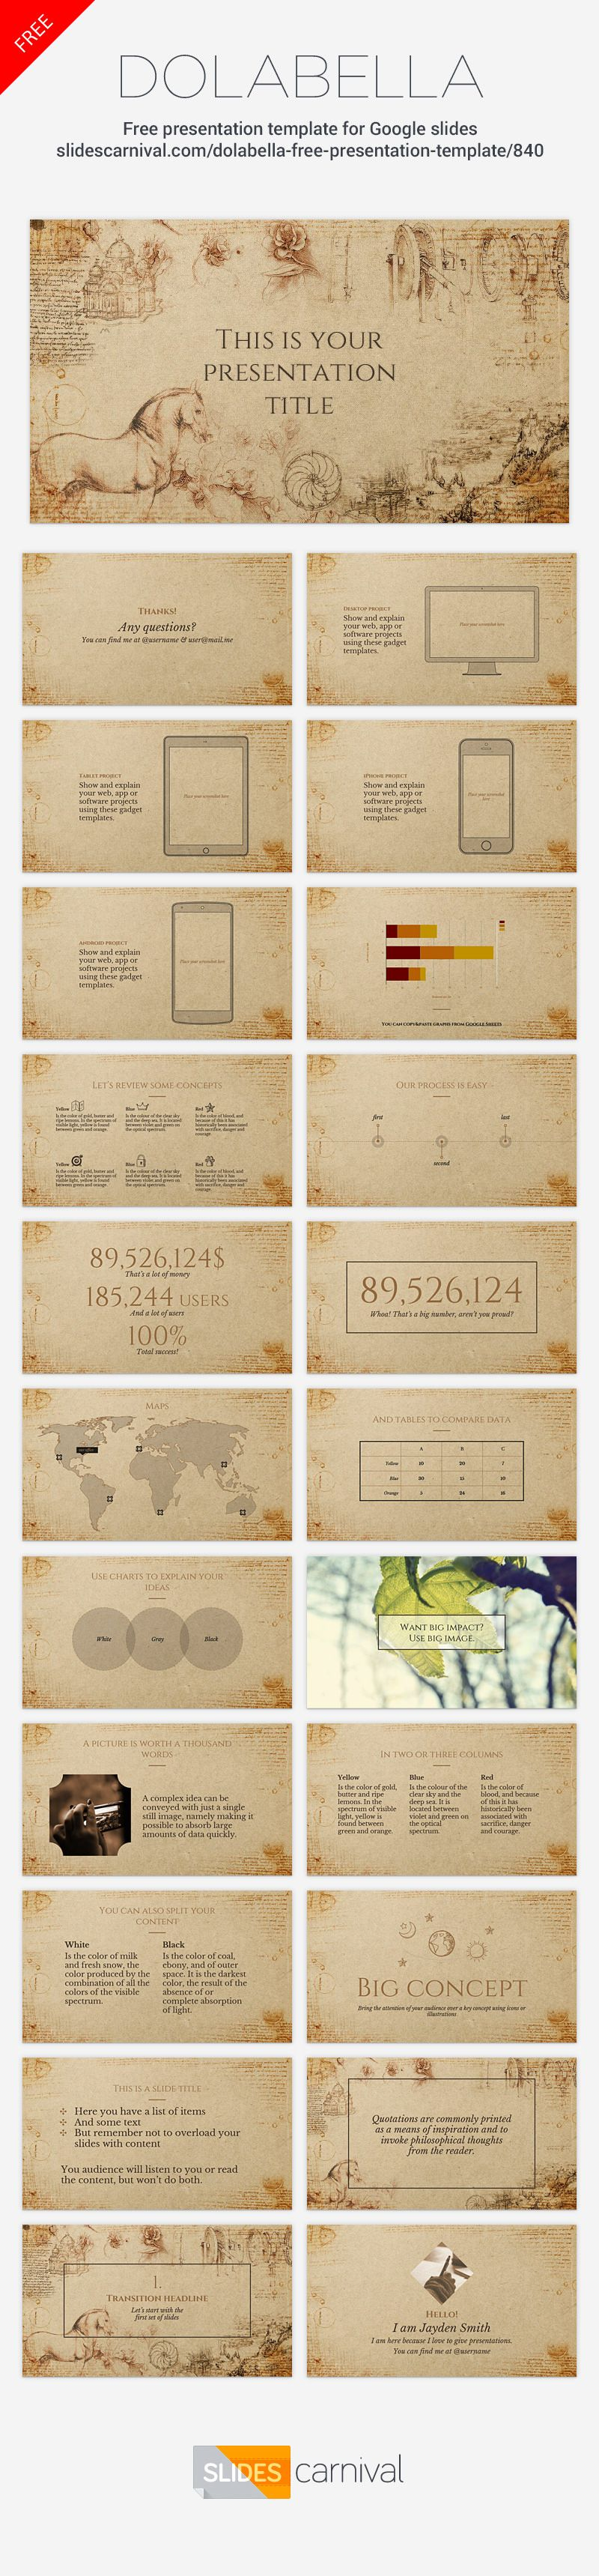 This free presentation template uses a textured paper background this free presentation template uses a textured paper background leonardo da vincis drawings and classic typography to convey a historical feeling toneelgroepblik Gallery